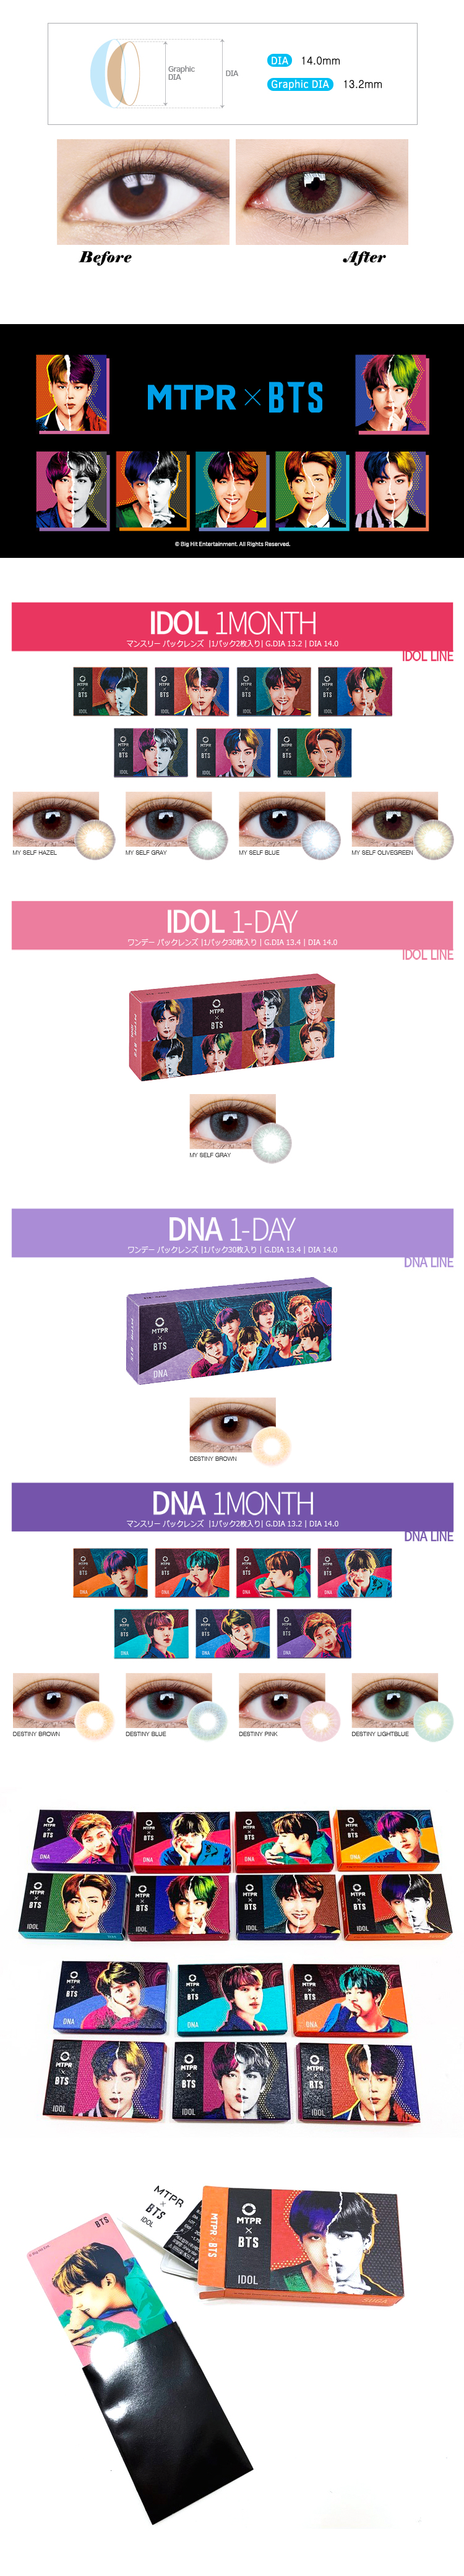 [1ヶ月] BTS IDOL マイセルフ マンスリー (BTS IDOL 1MONTH MY SELF OLIVEGREEN) DIA 14.0mm [1箱2枚]